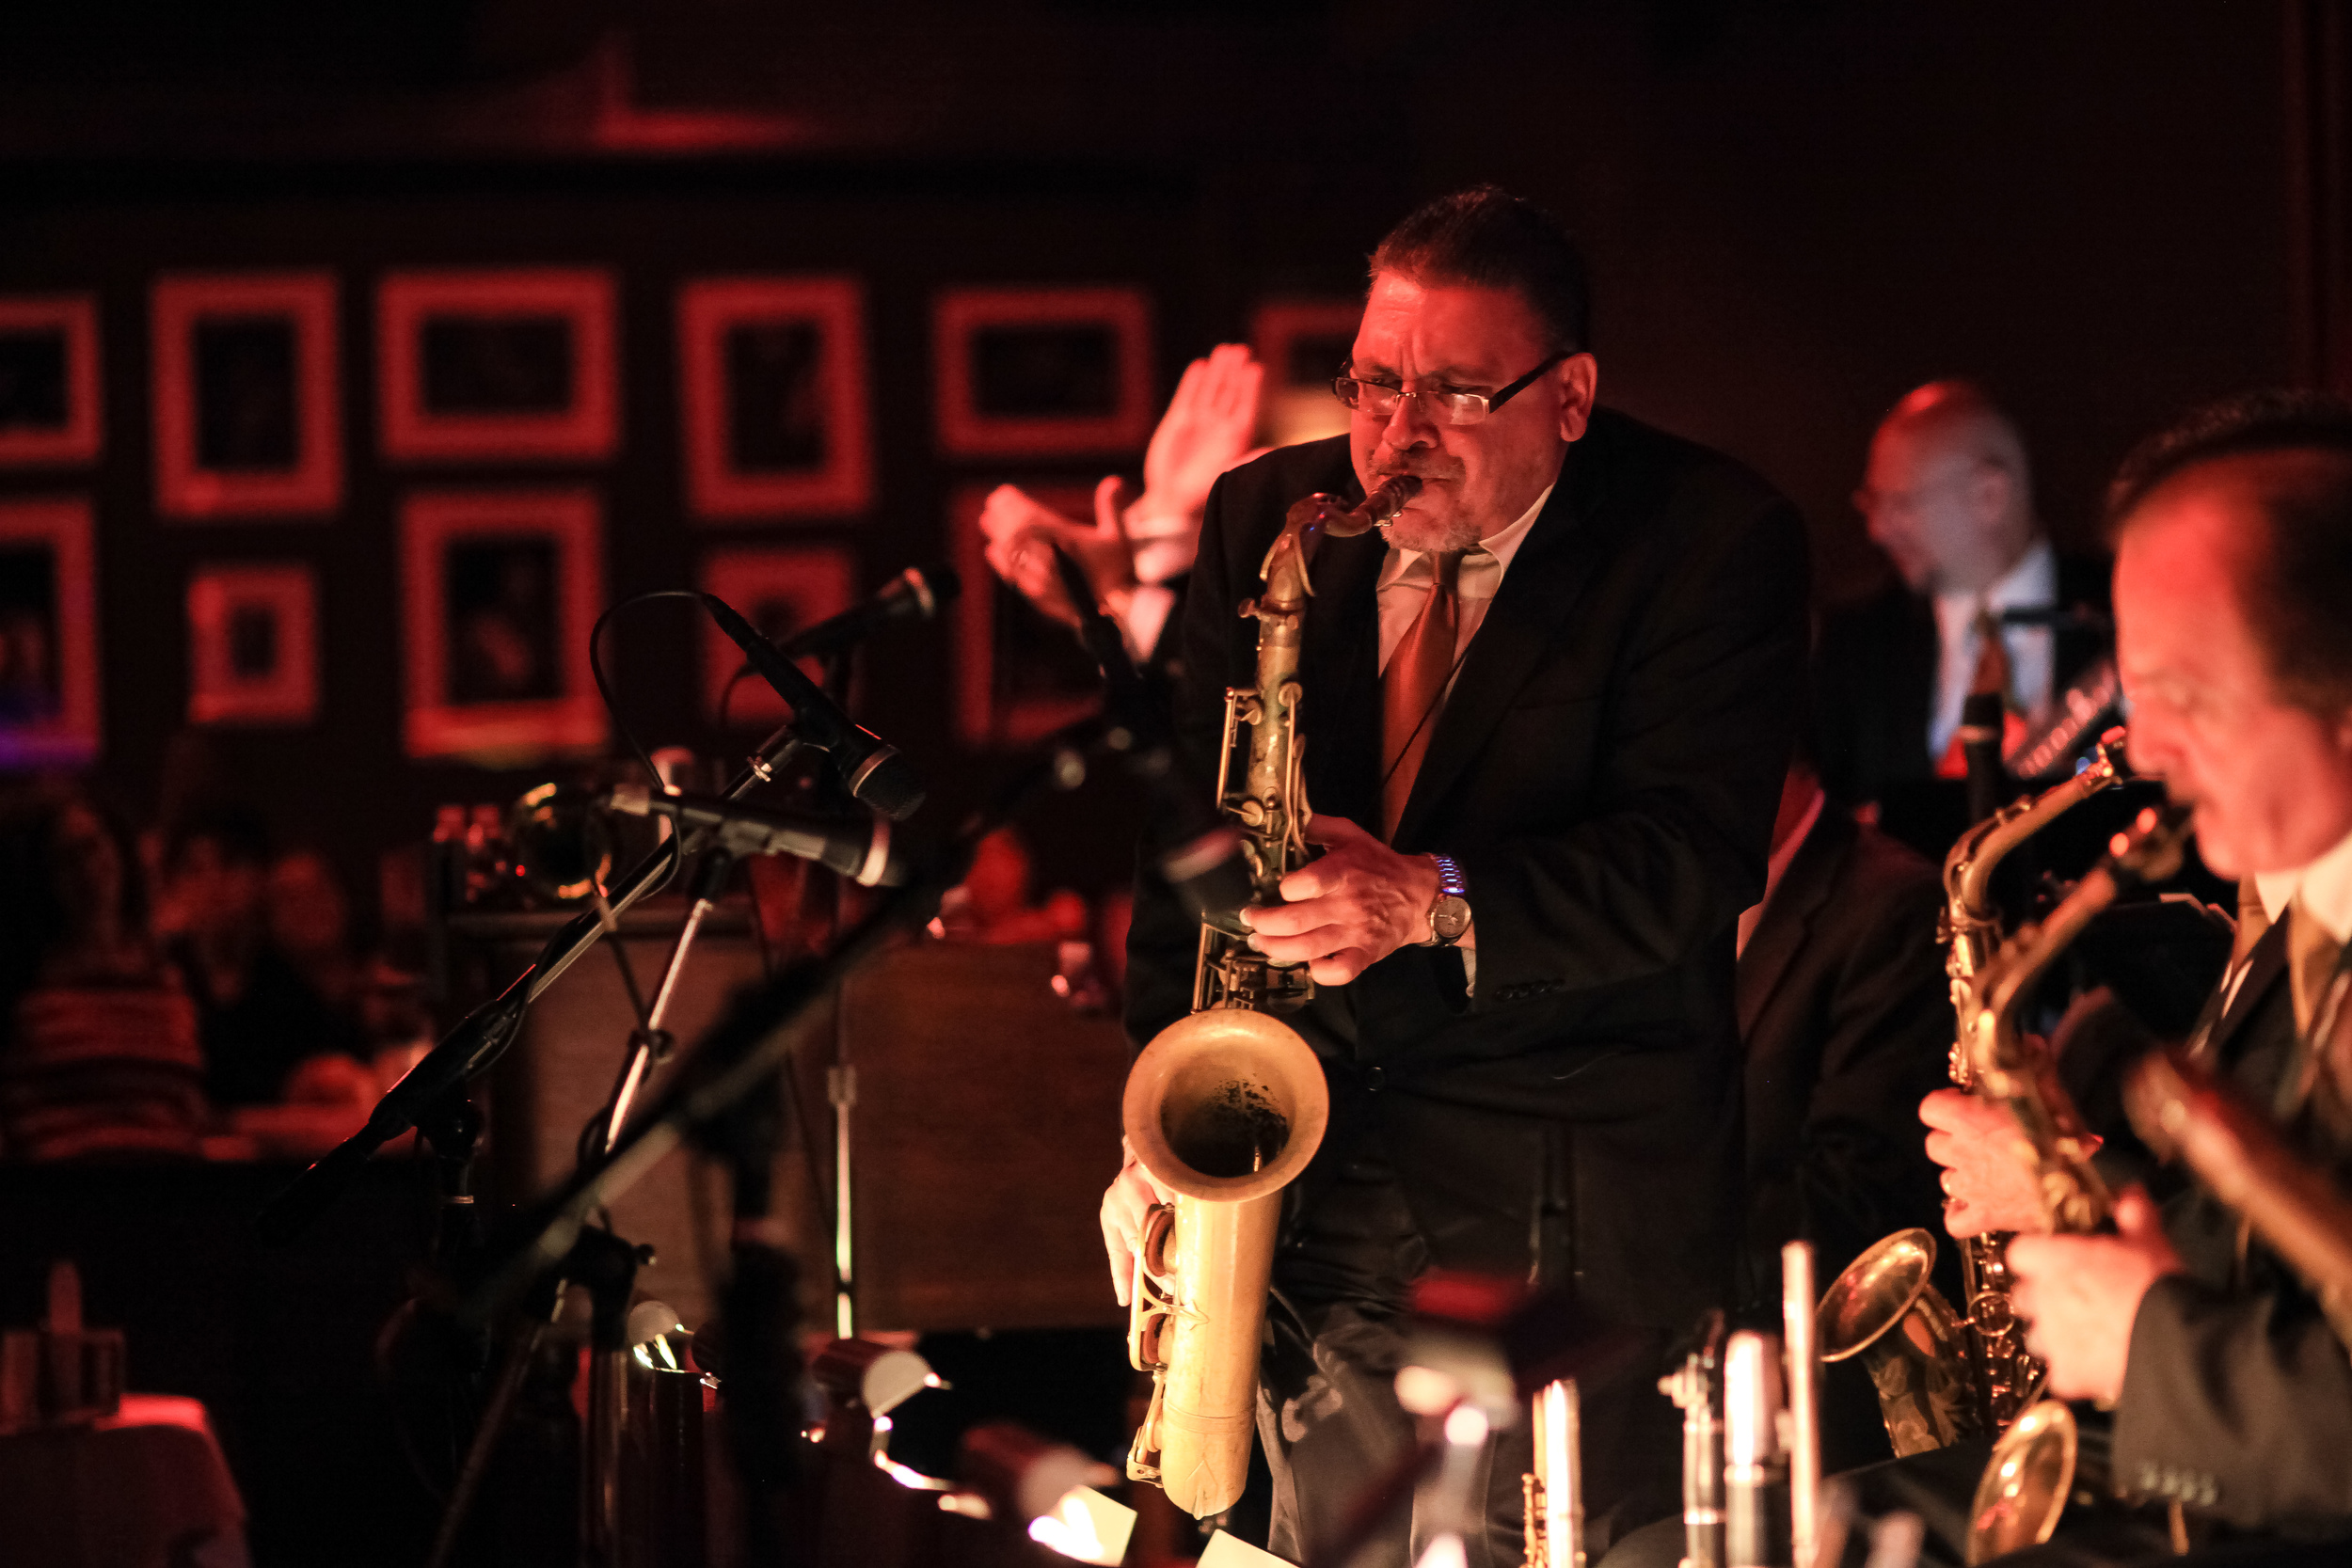 Copy of Special Guest Jerry Weldon on Tenor Sax